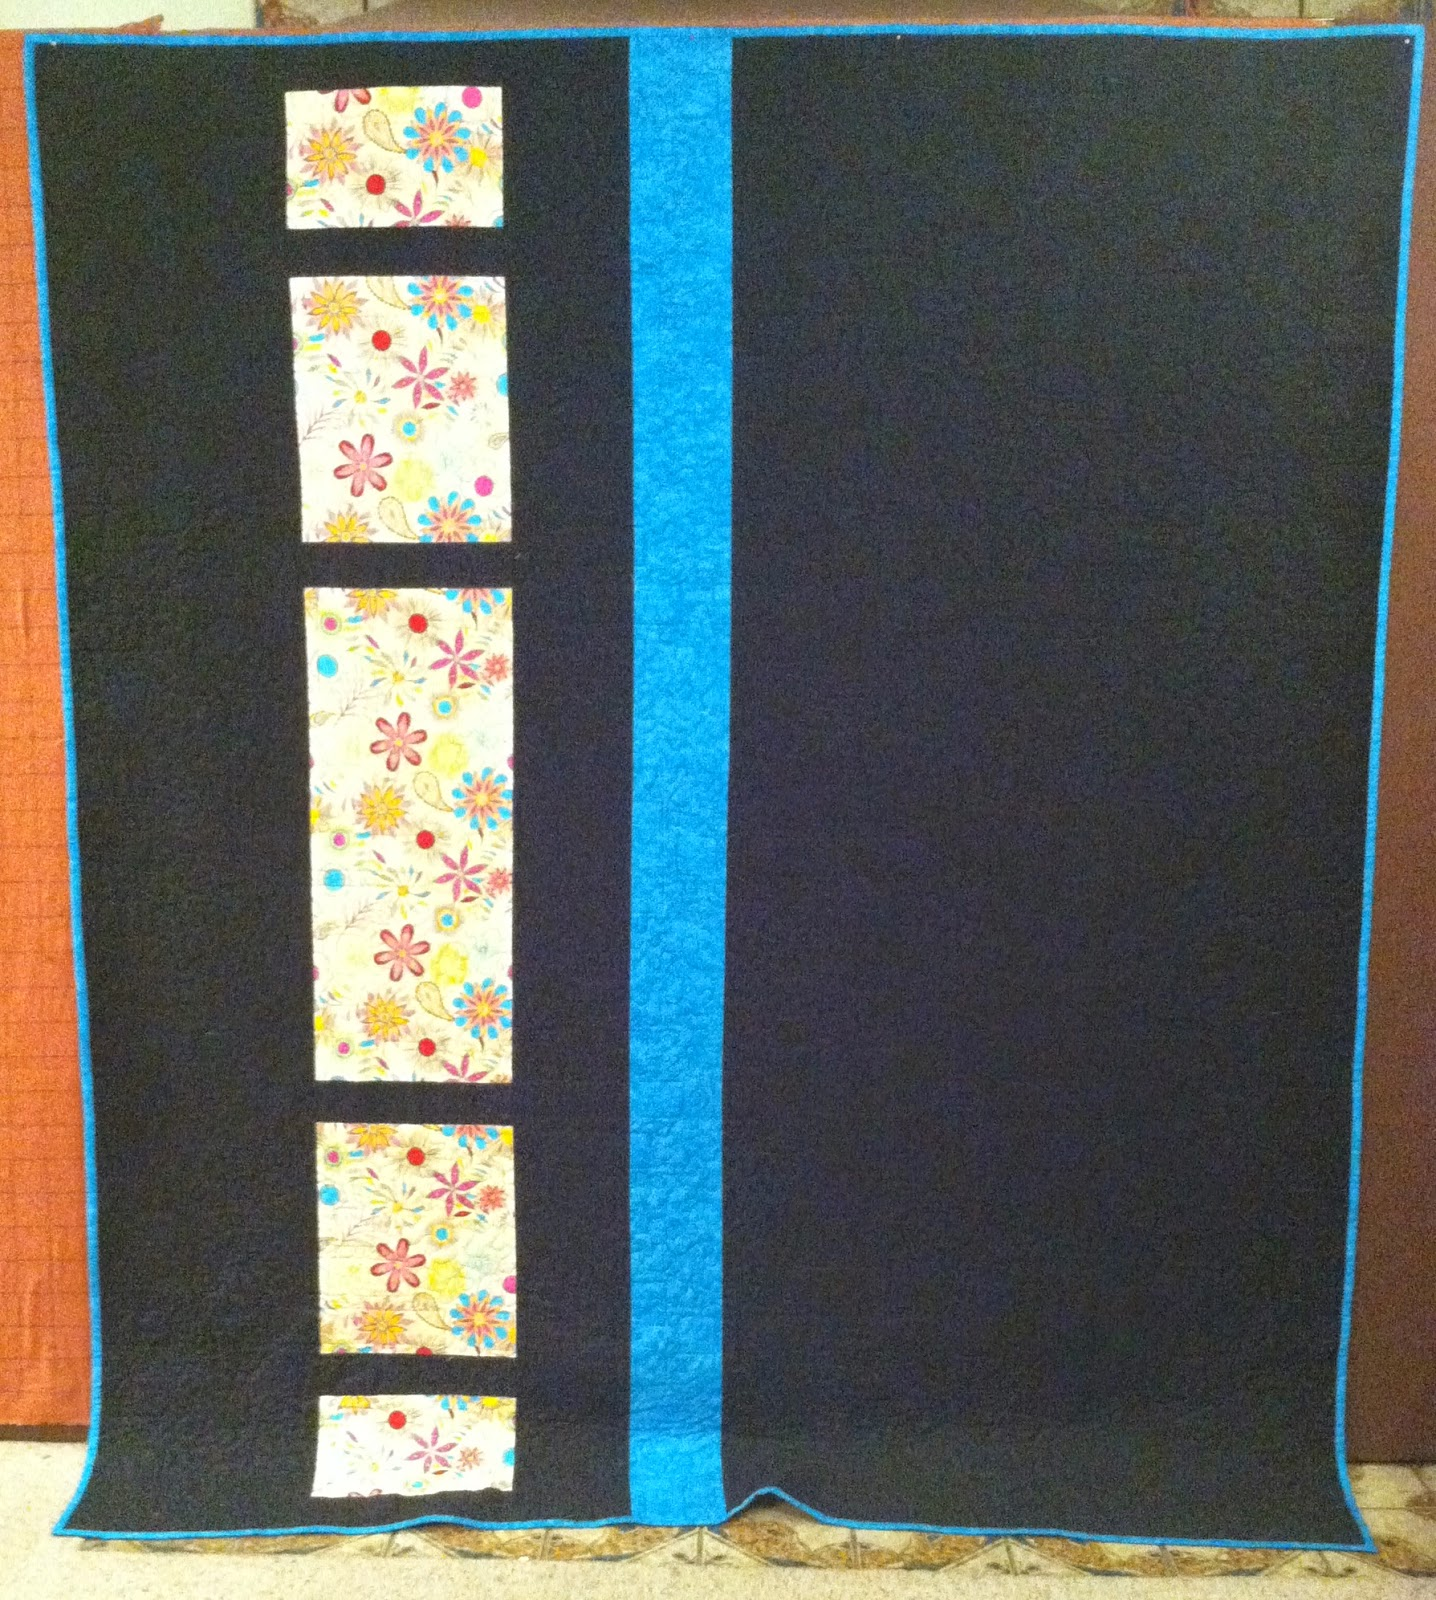 Jelly Roll Quilt - Bright colors against a black background is stunning! Reversible too!